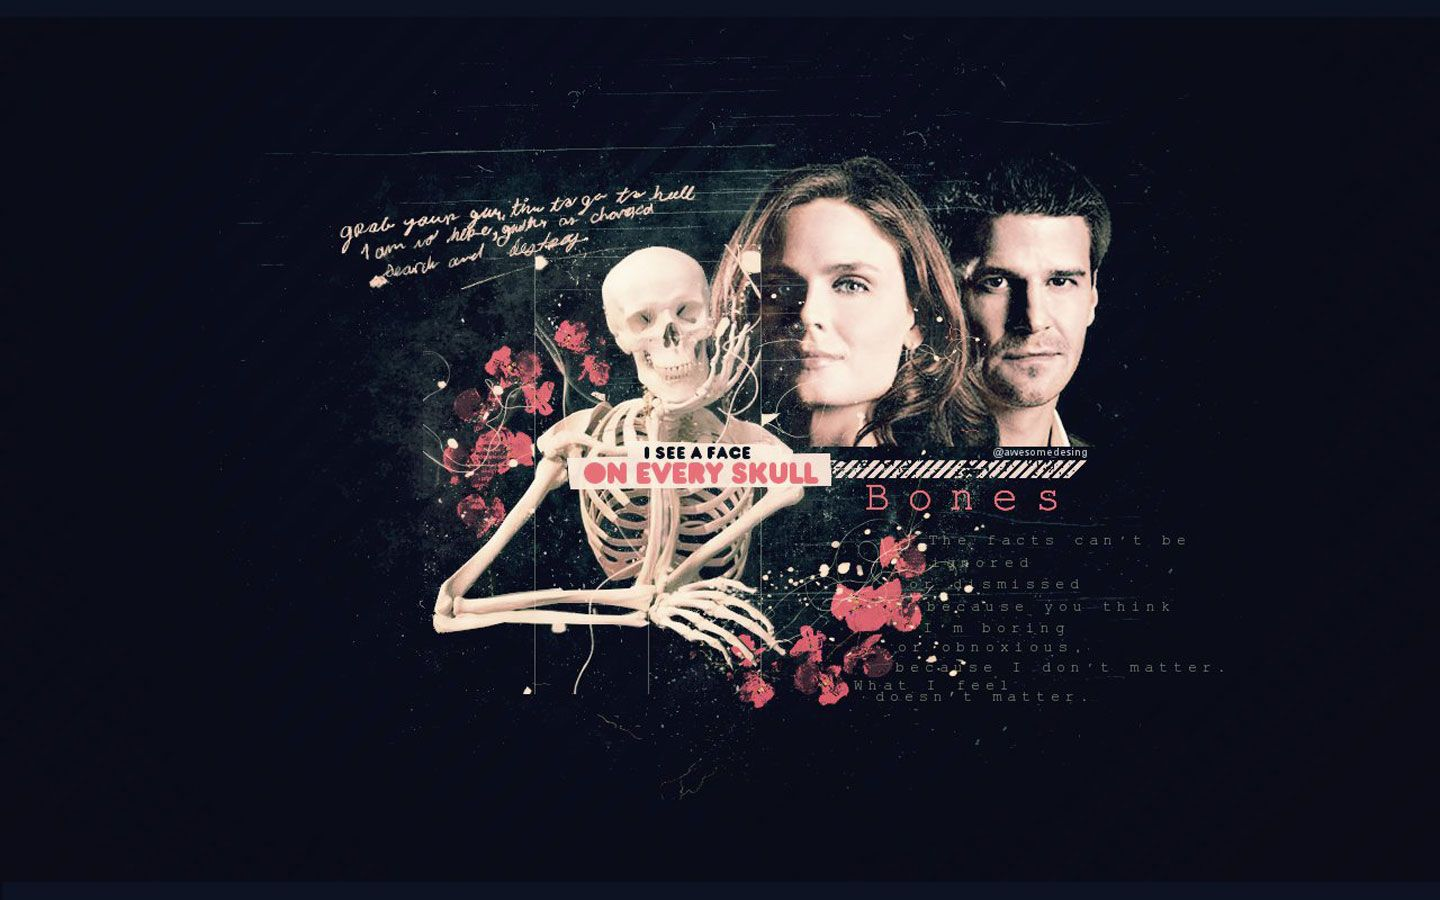 Pictures From Tv Show Bones